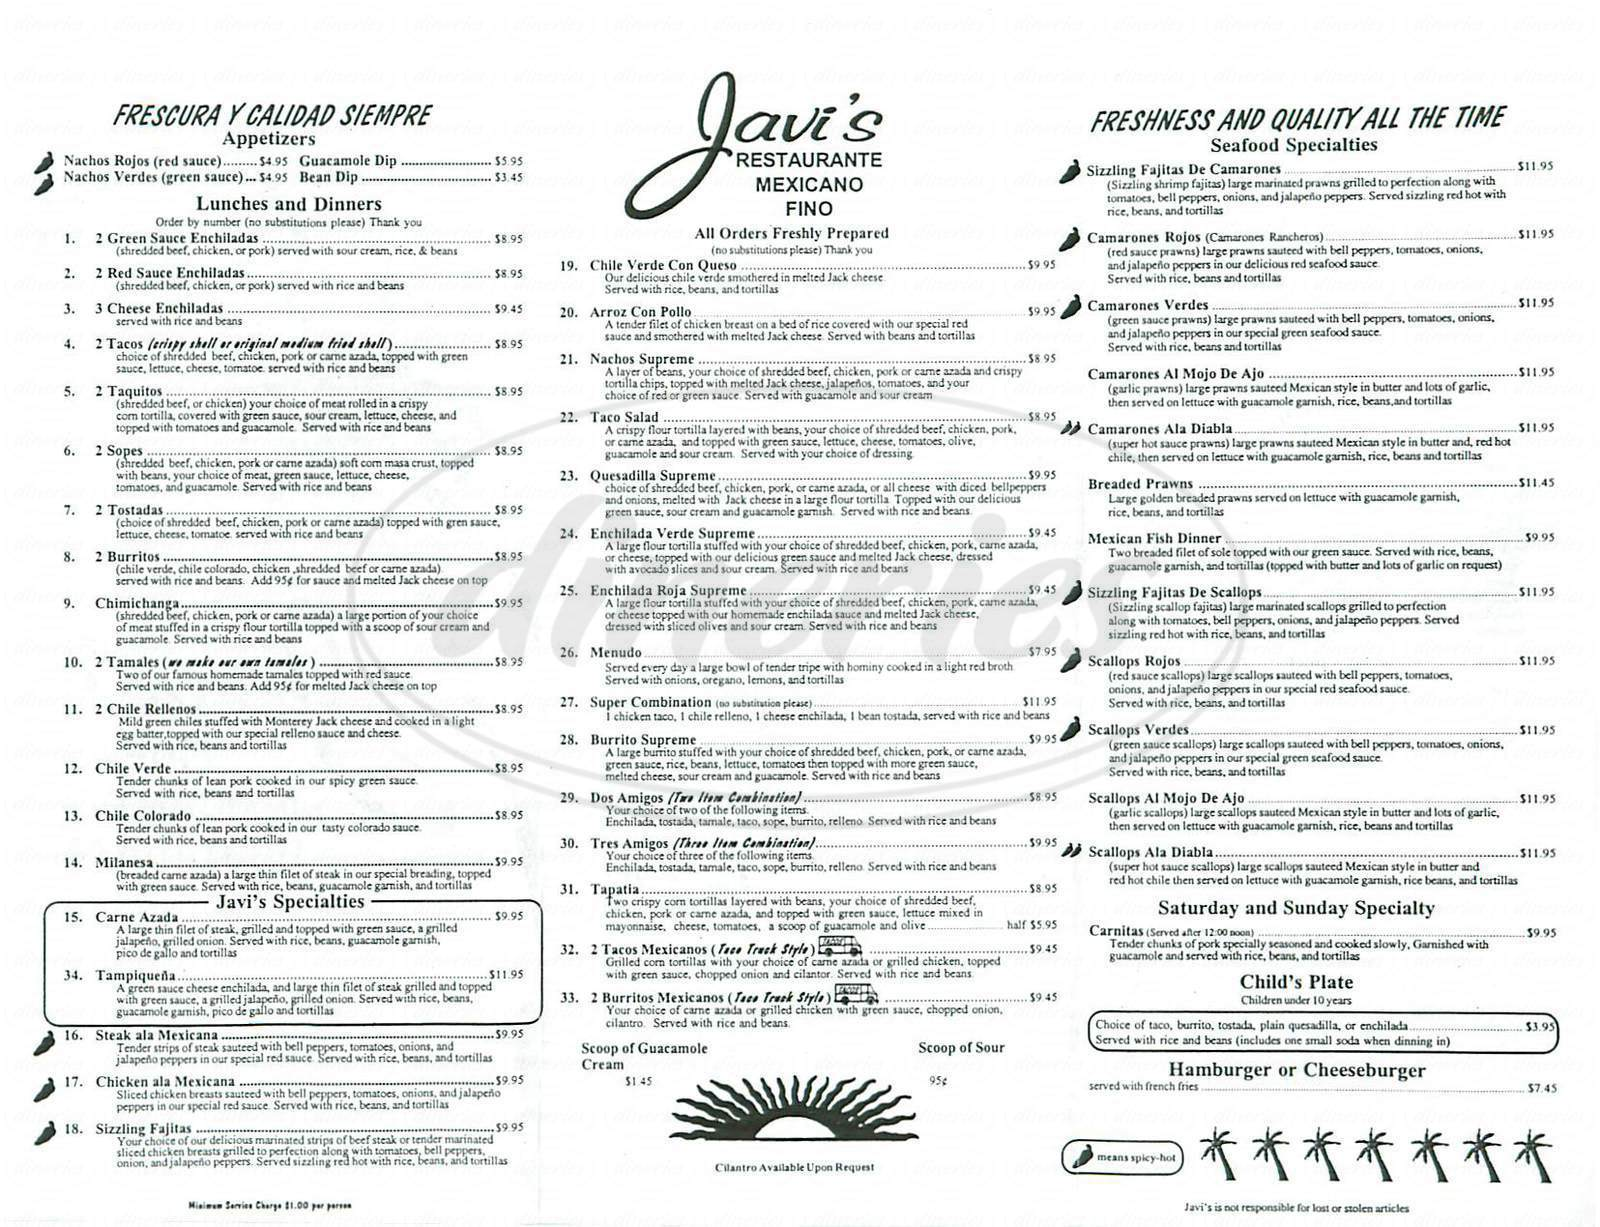 menu for Javi's Fine Mexican Food Restaurant